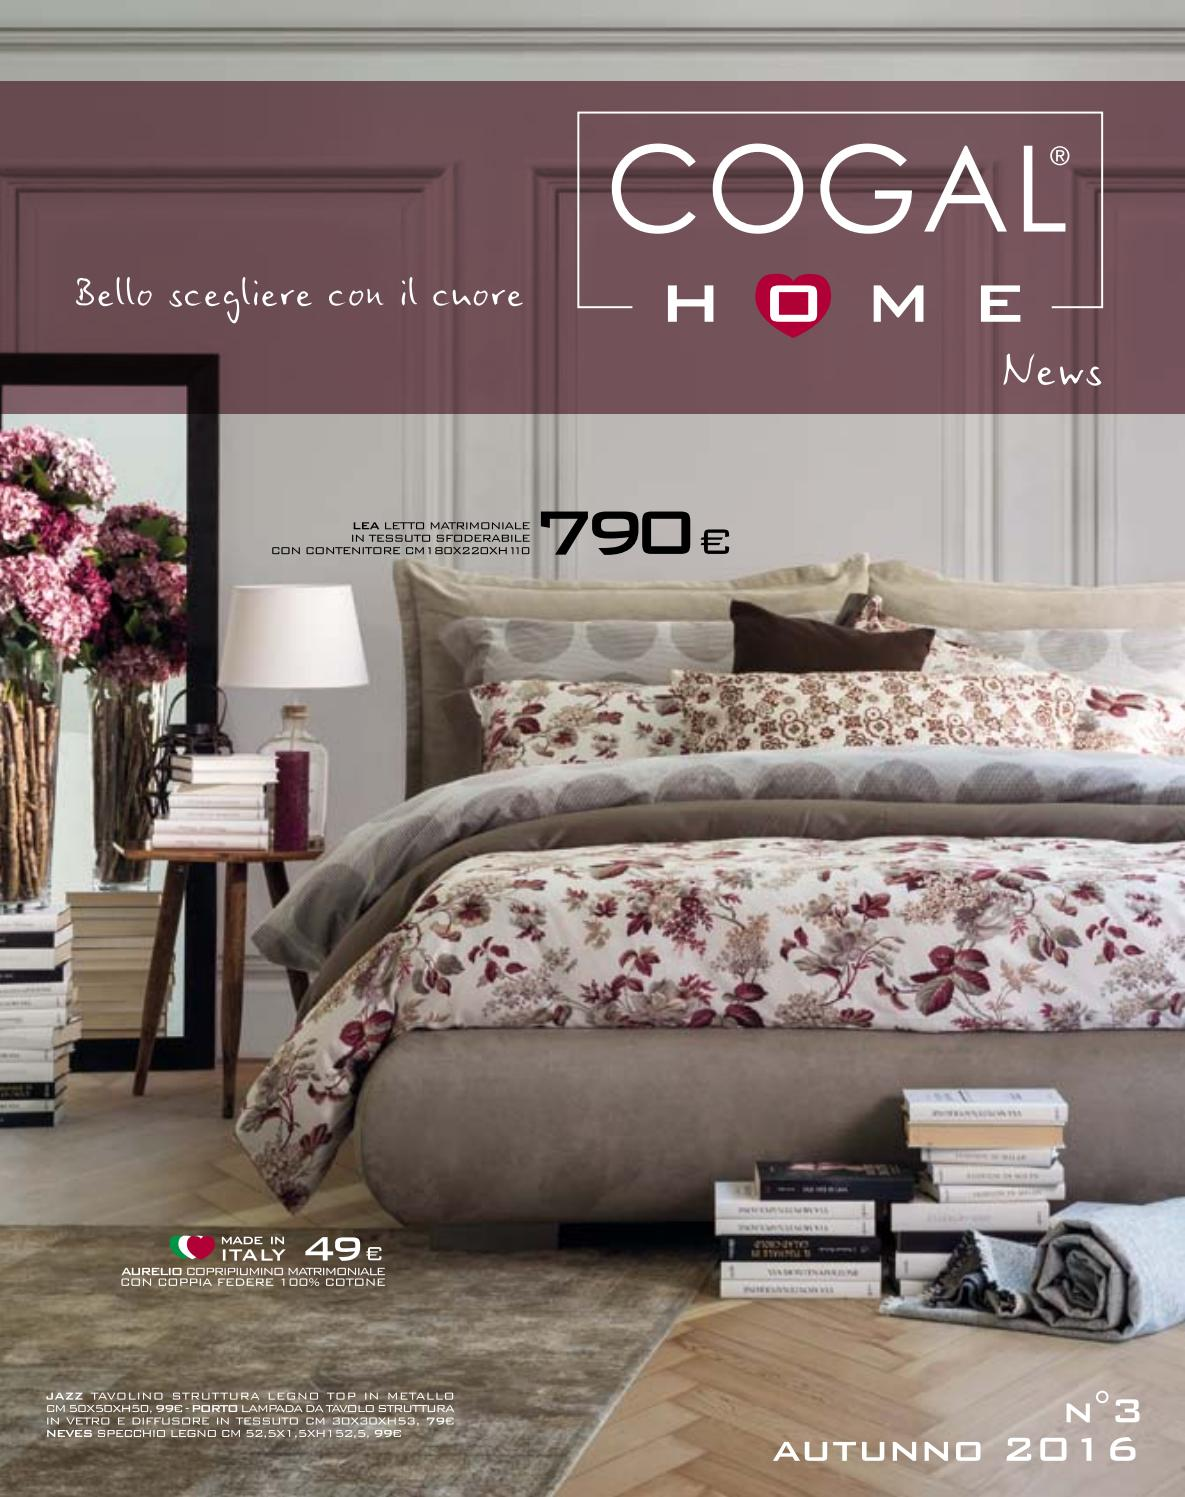 Cogal Home Cogal Home News N3 Autunno 2016 By Cogal Home Issuu